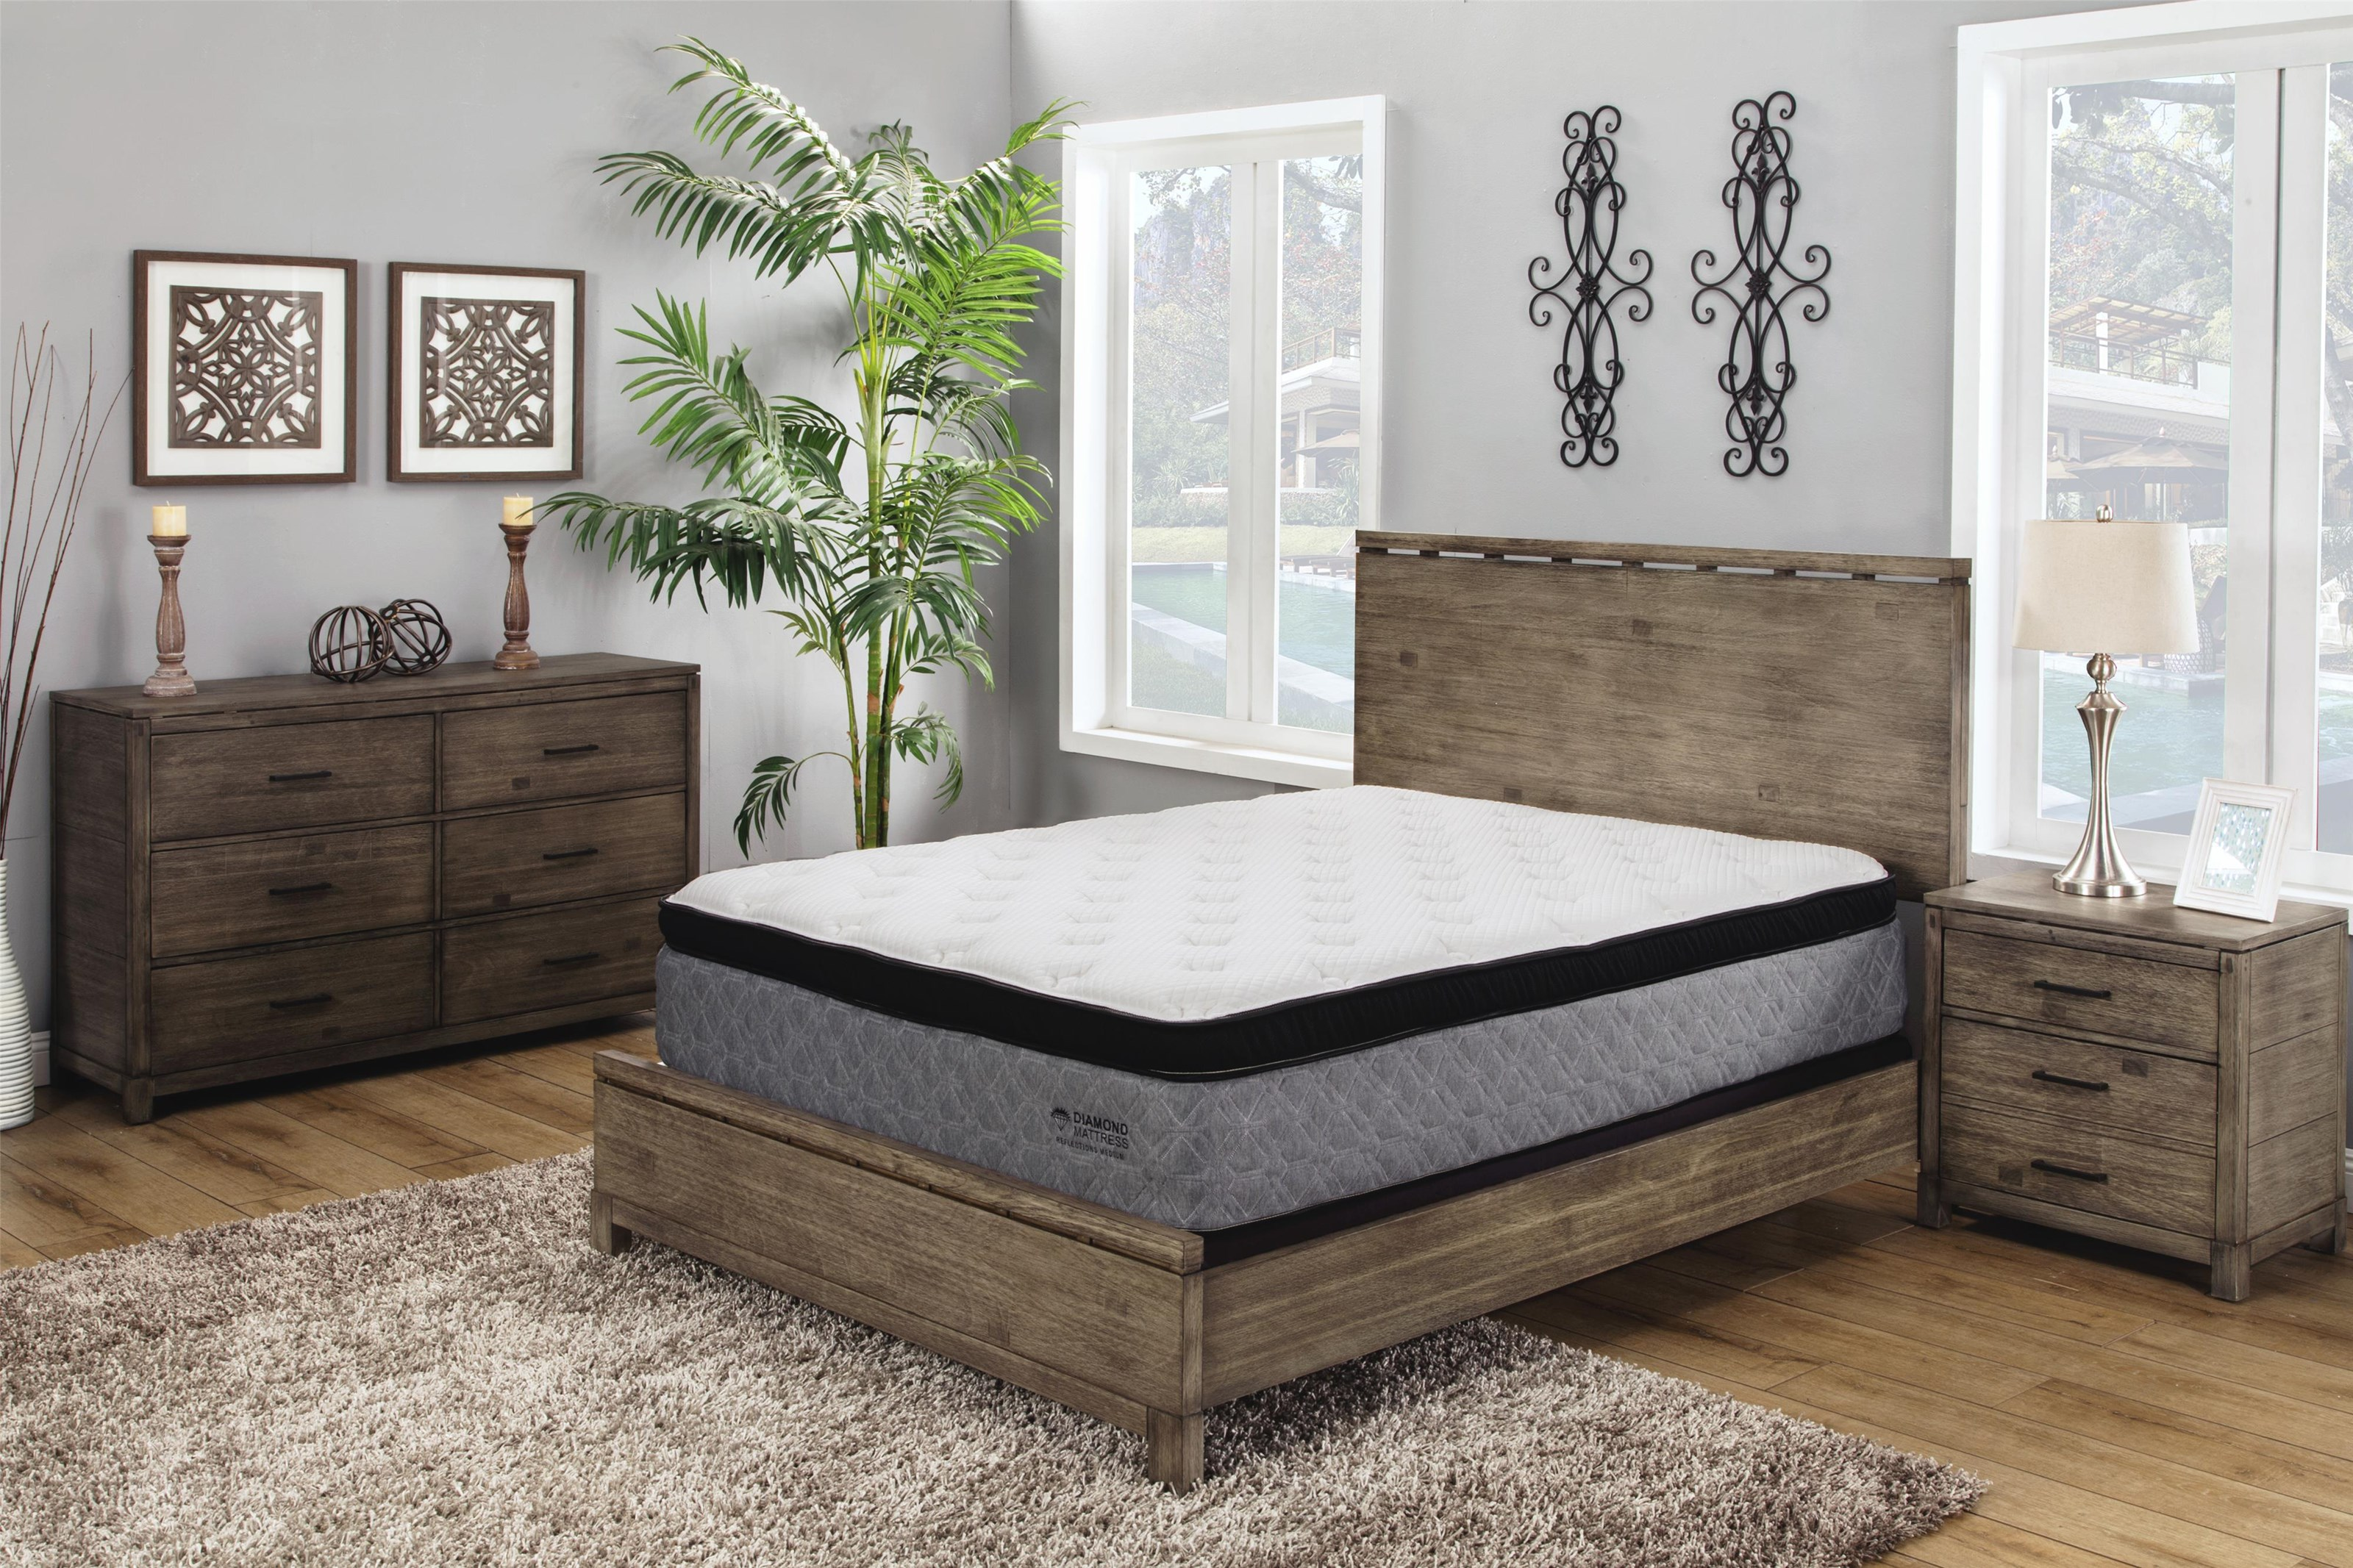 Midtown Full Firm Hybrid Cooling Mattress by Diamond Mattress at Beck's Furniture